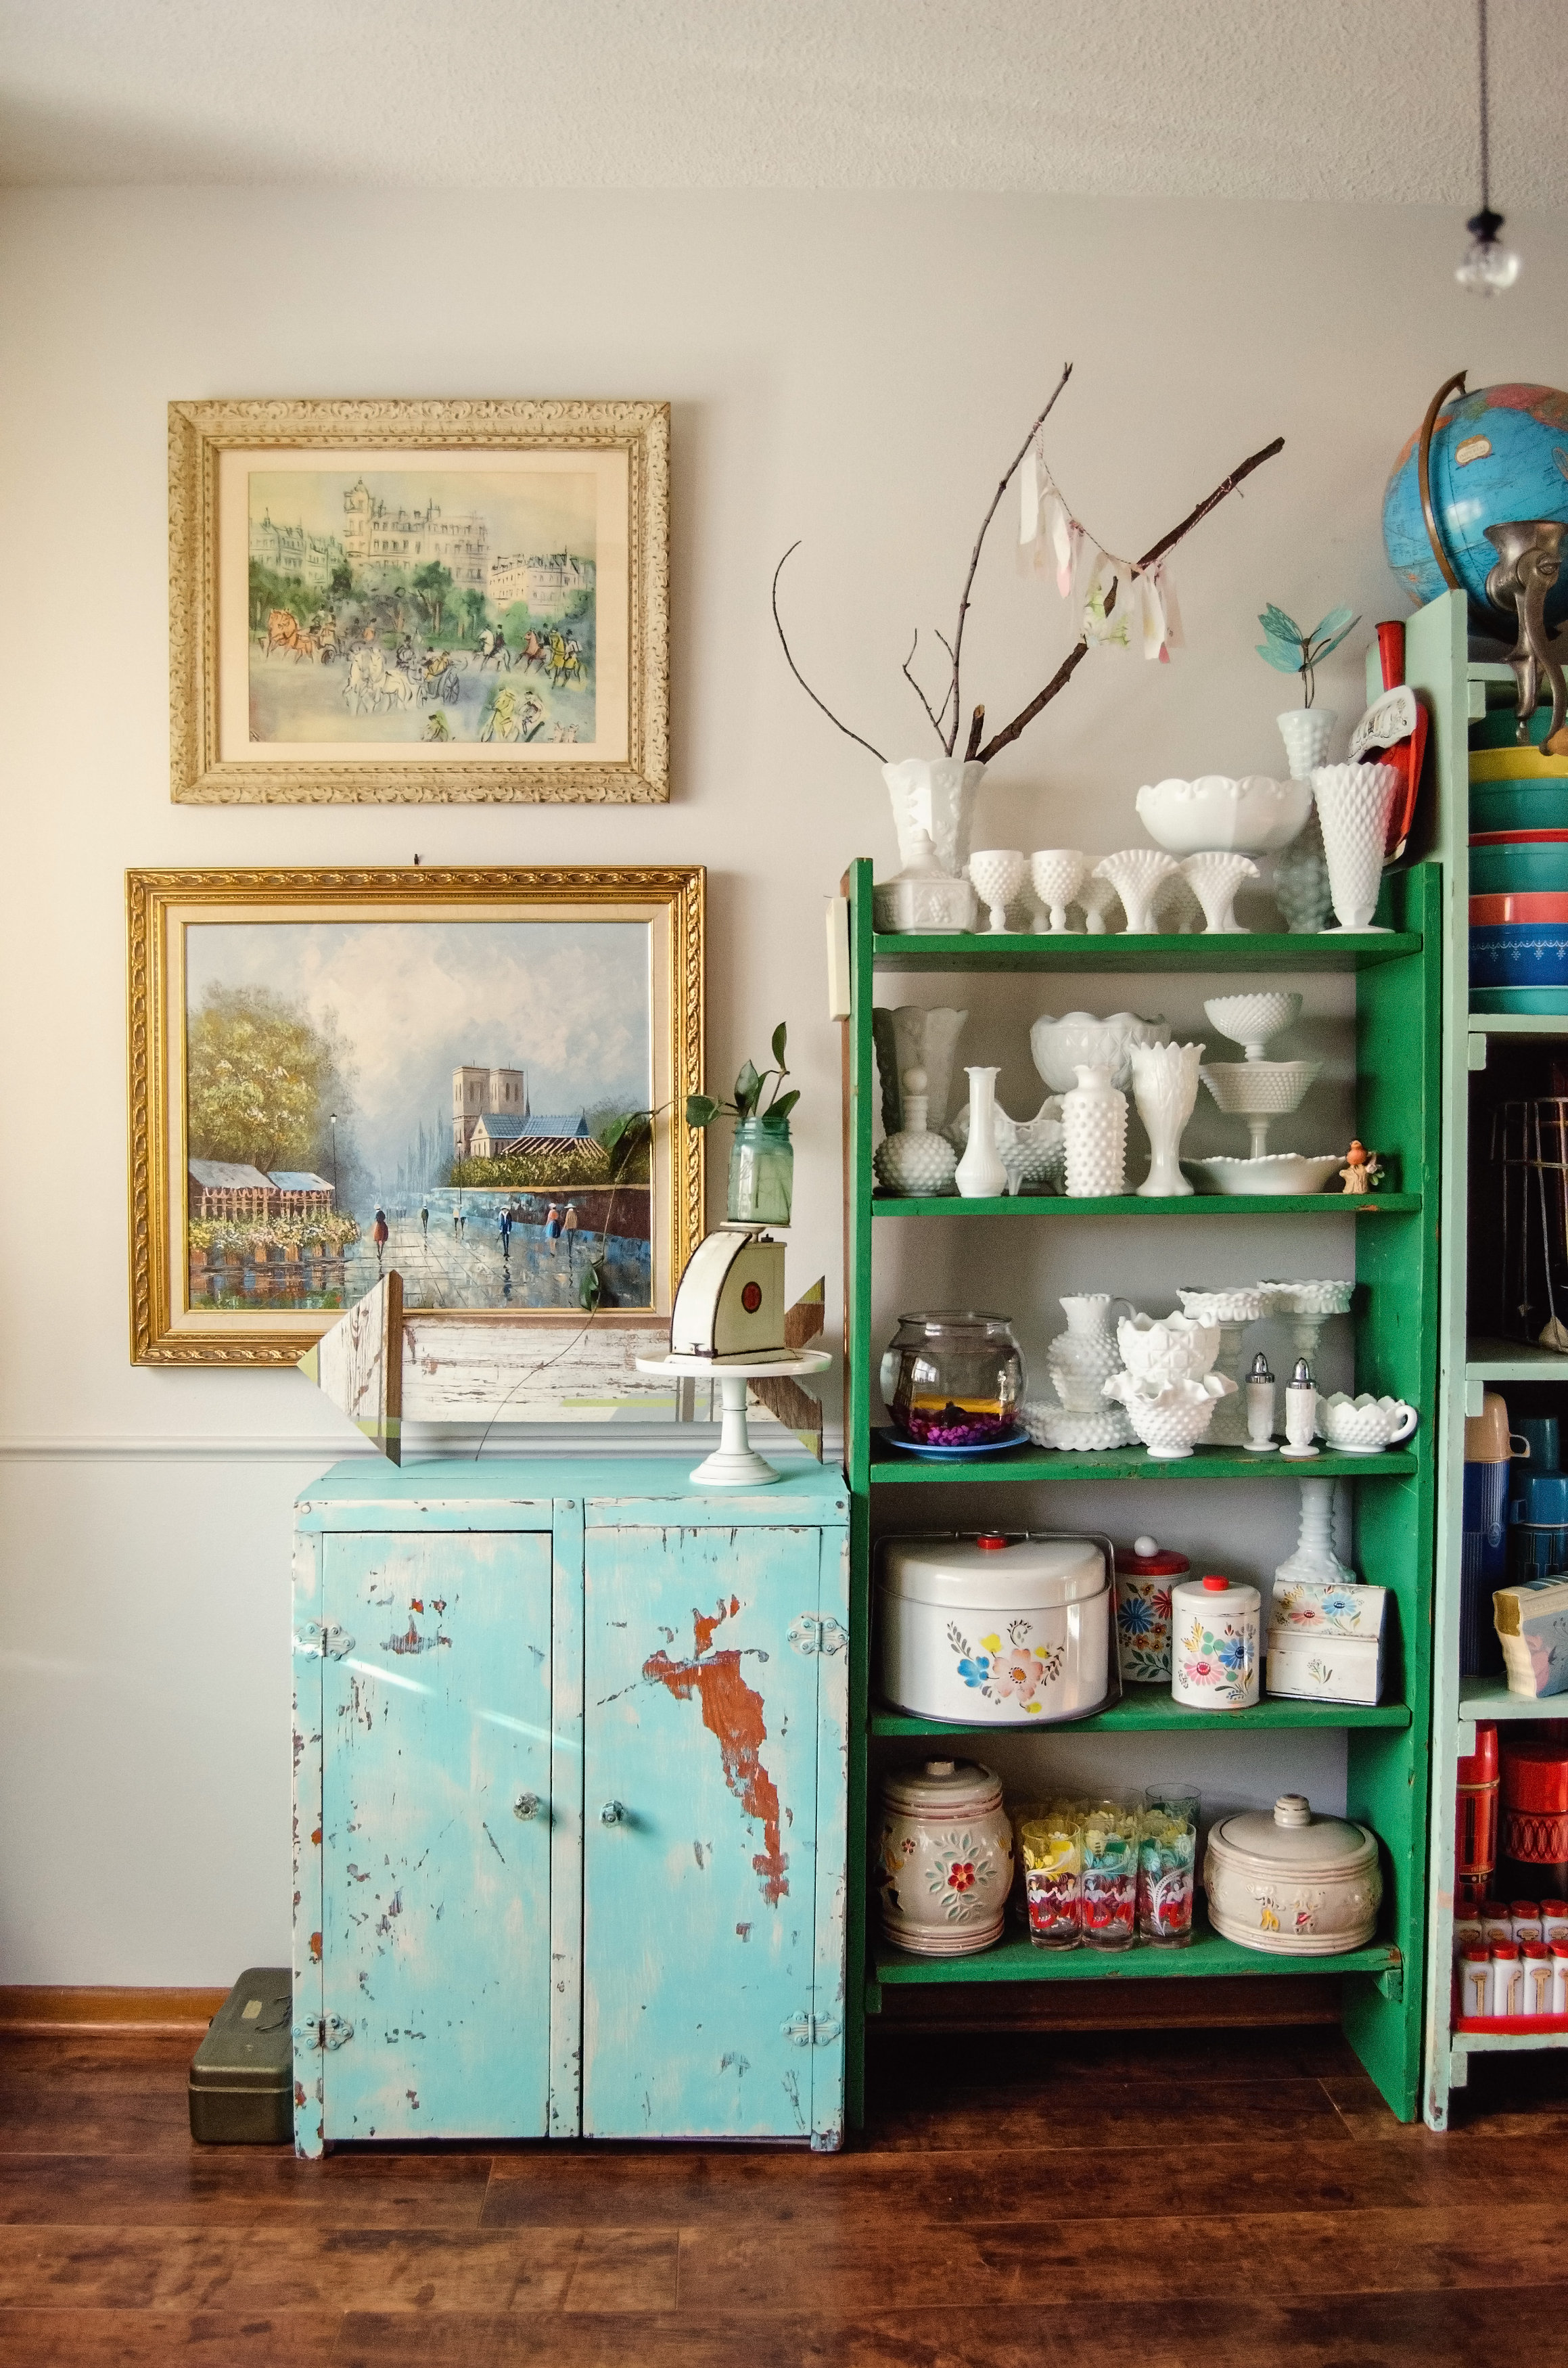 A chippy aqua cabinet next to kelly green shelving holding vintage milk glass. H.Prall & Co. | hprallandco.com